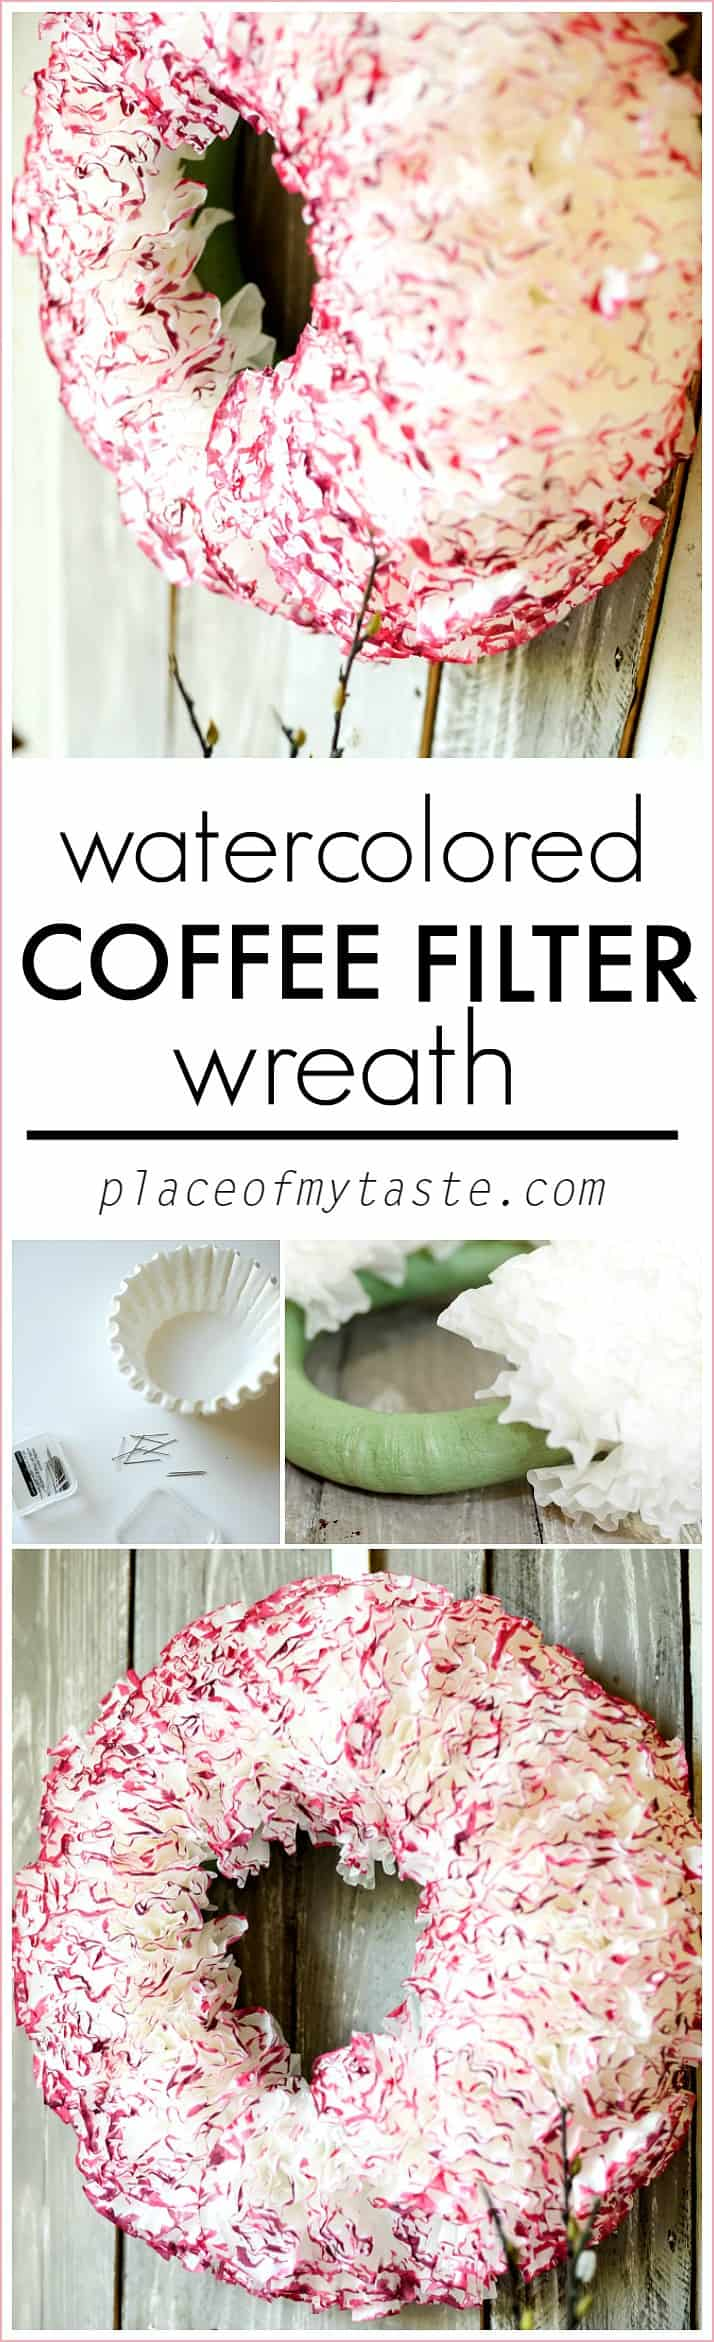 WATERCOLORED COFFEE PAPER WREATH